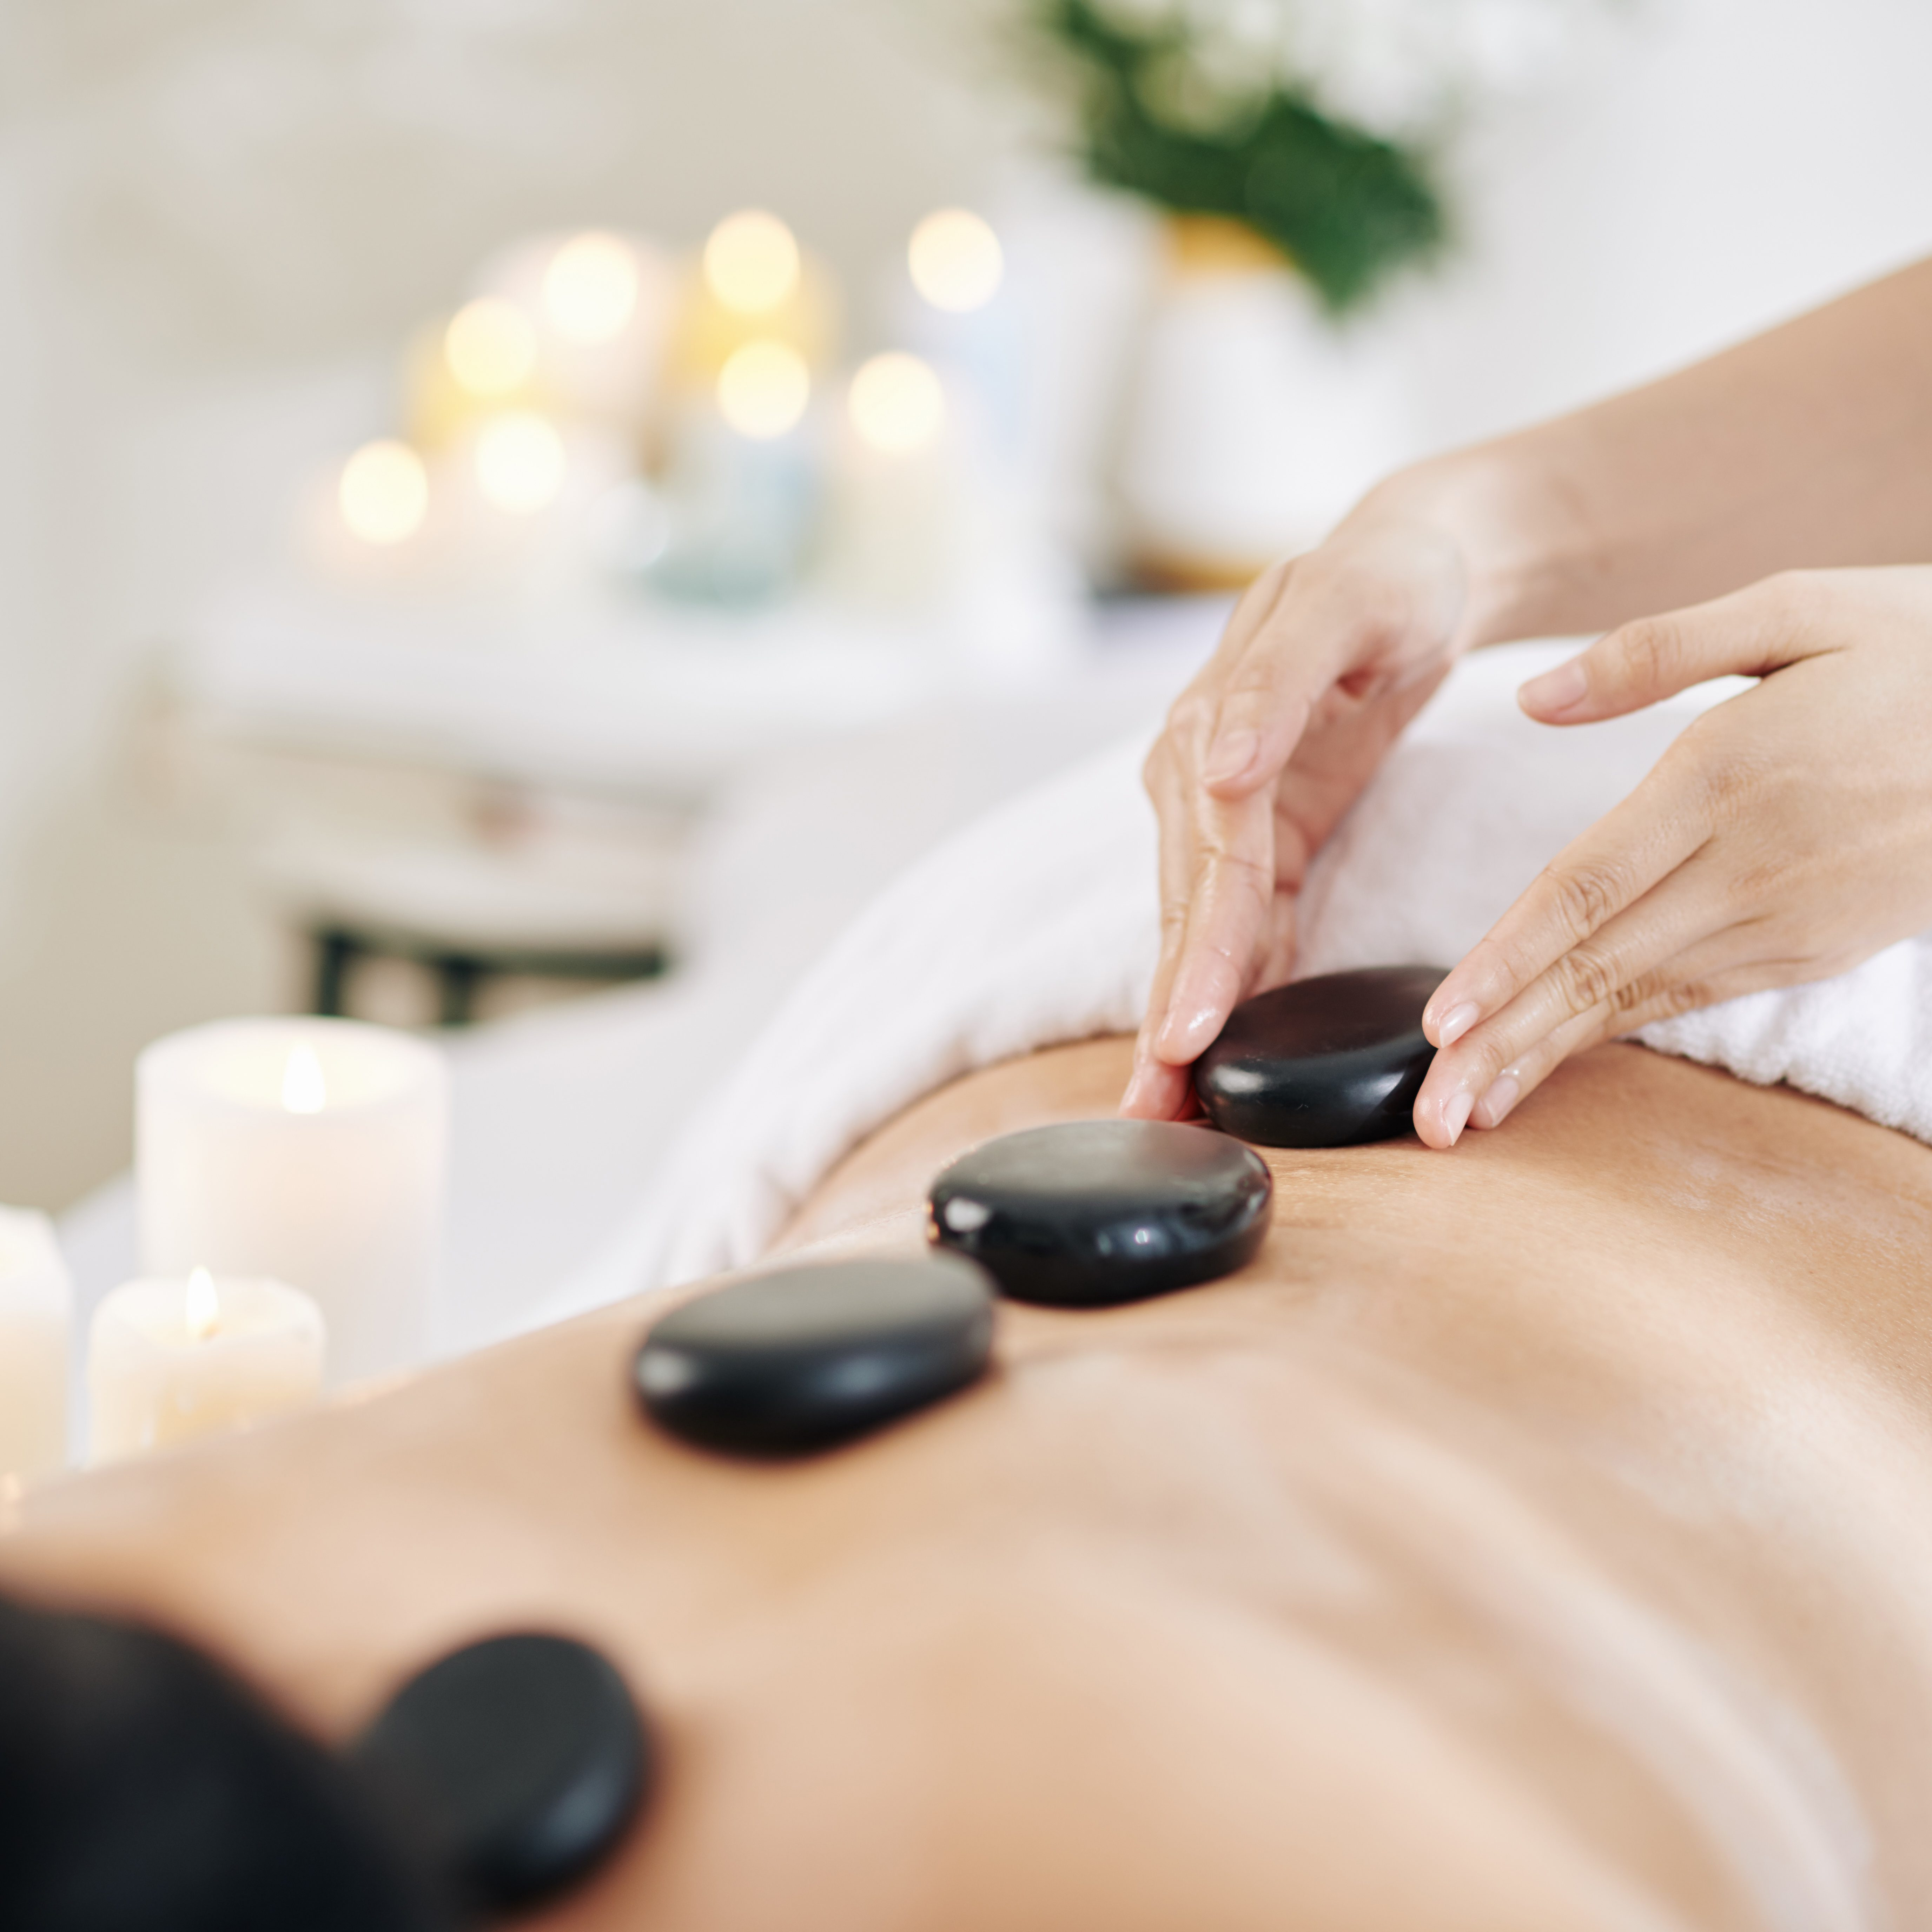 Spa salon client getting lastone therapy with warm basalt stones